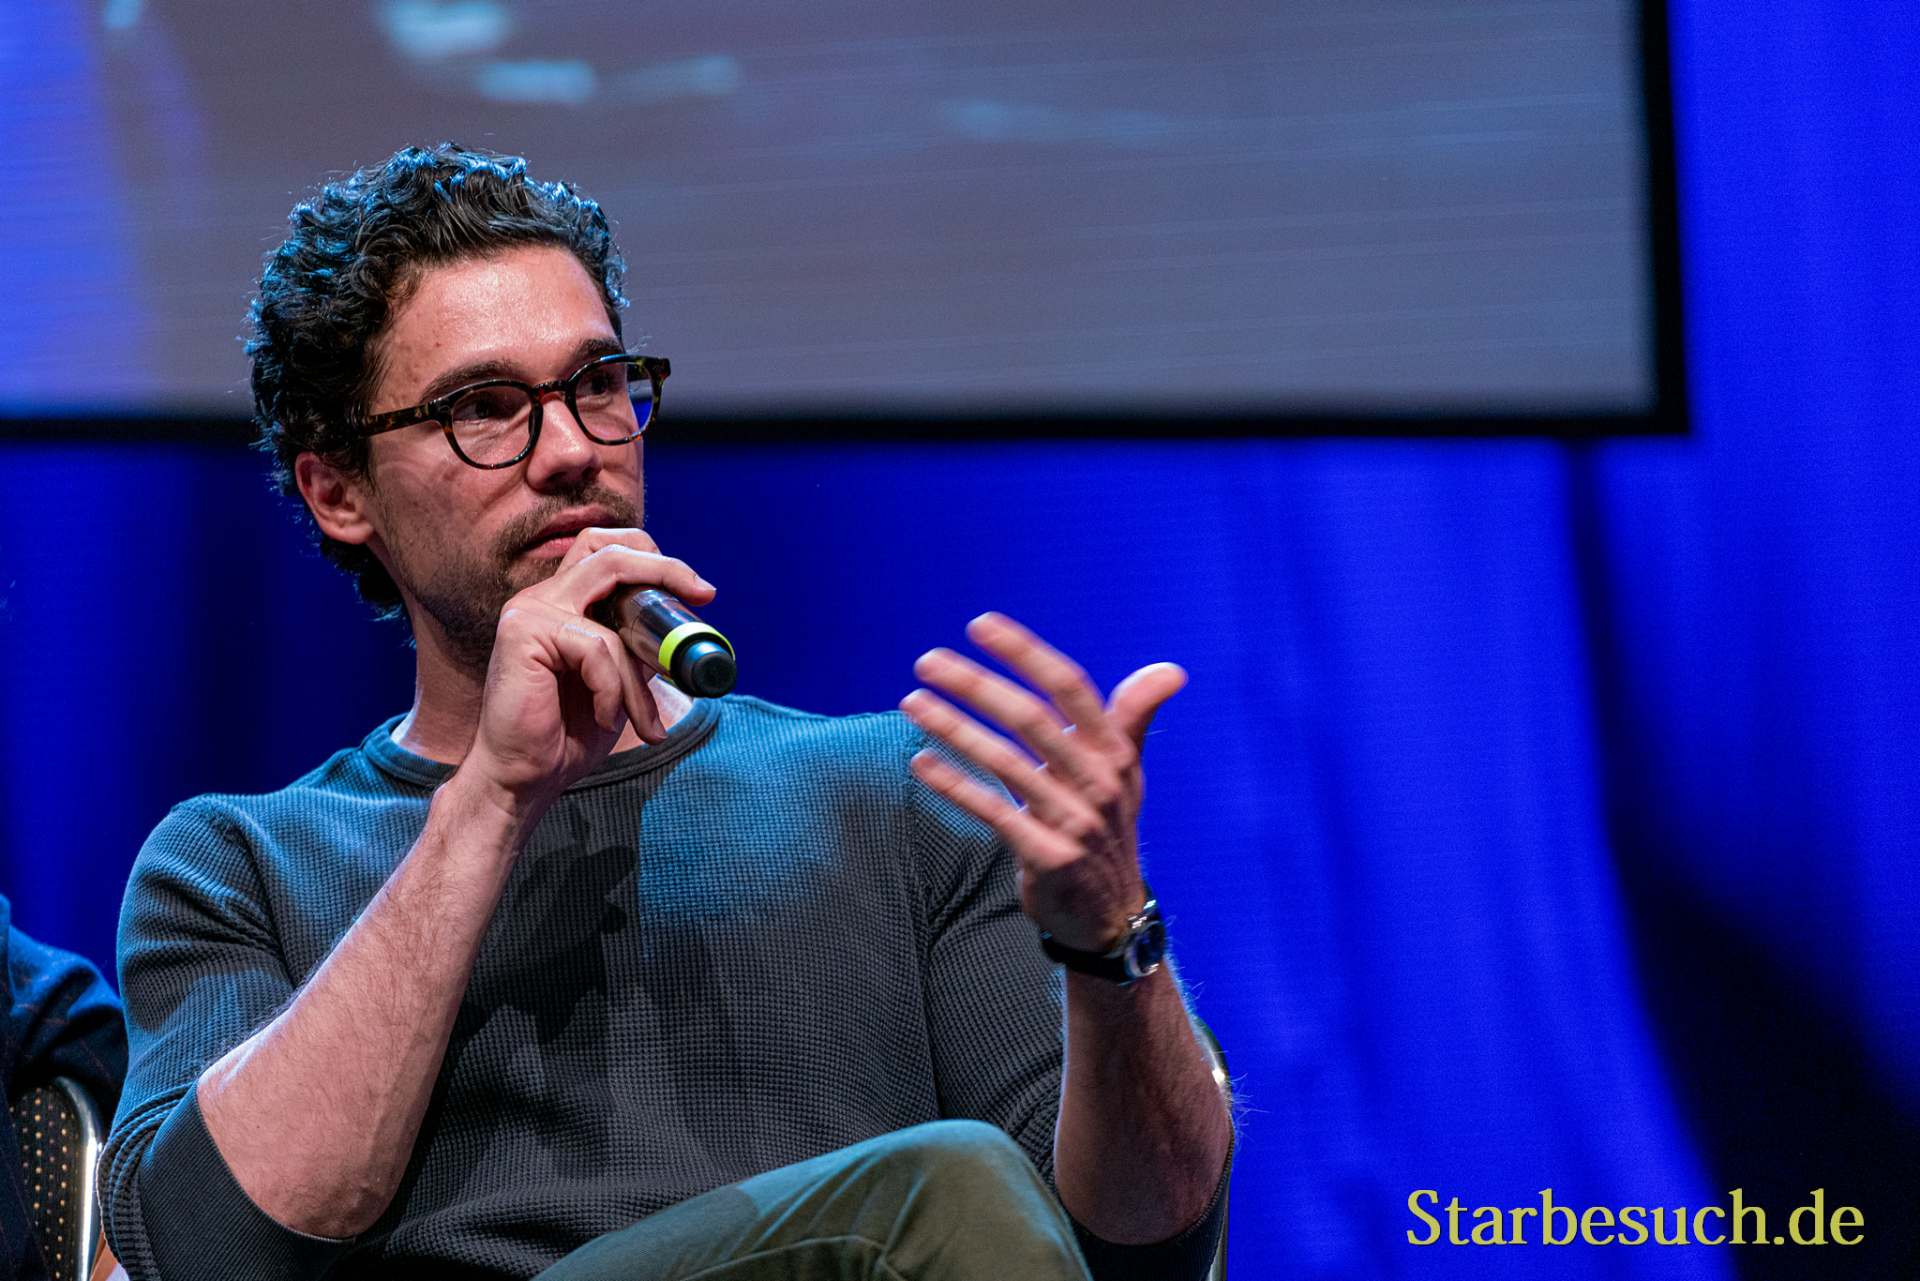 Bonn, Germany - June 8 2019: Steven Strait (*1986, American actor and model - The Expanse) talks about his experiences in The Expanse at FedCon 28